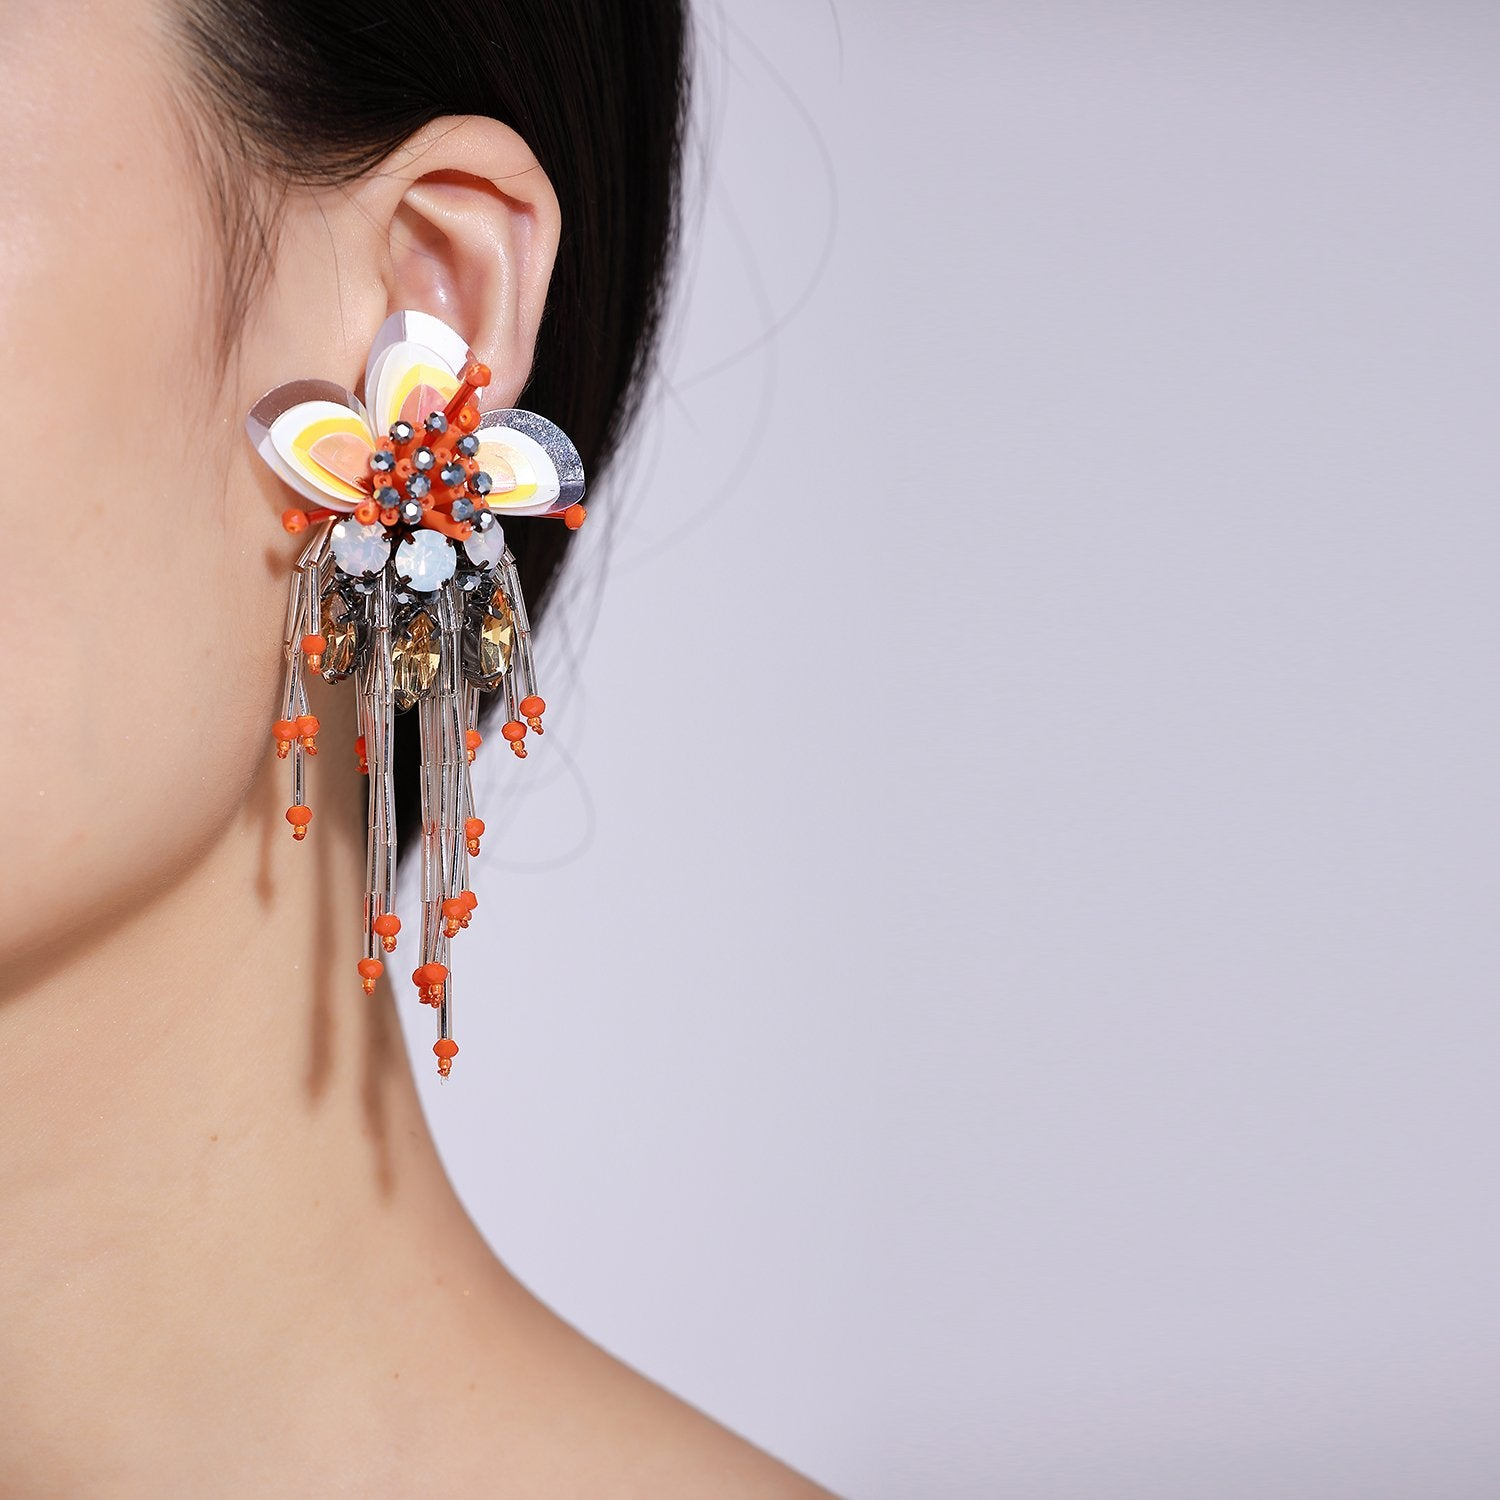 Handmade Earrings for Women